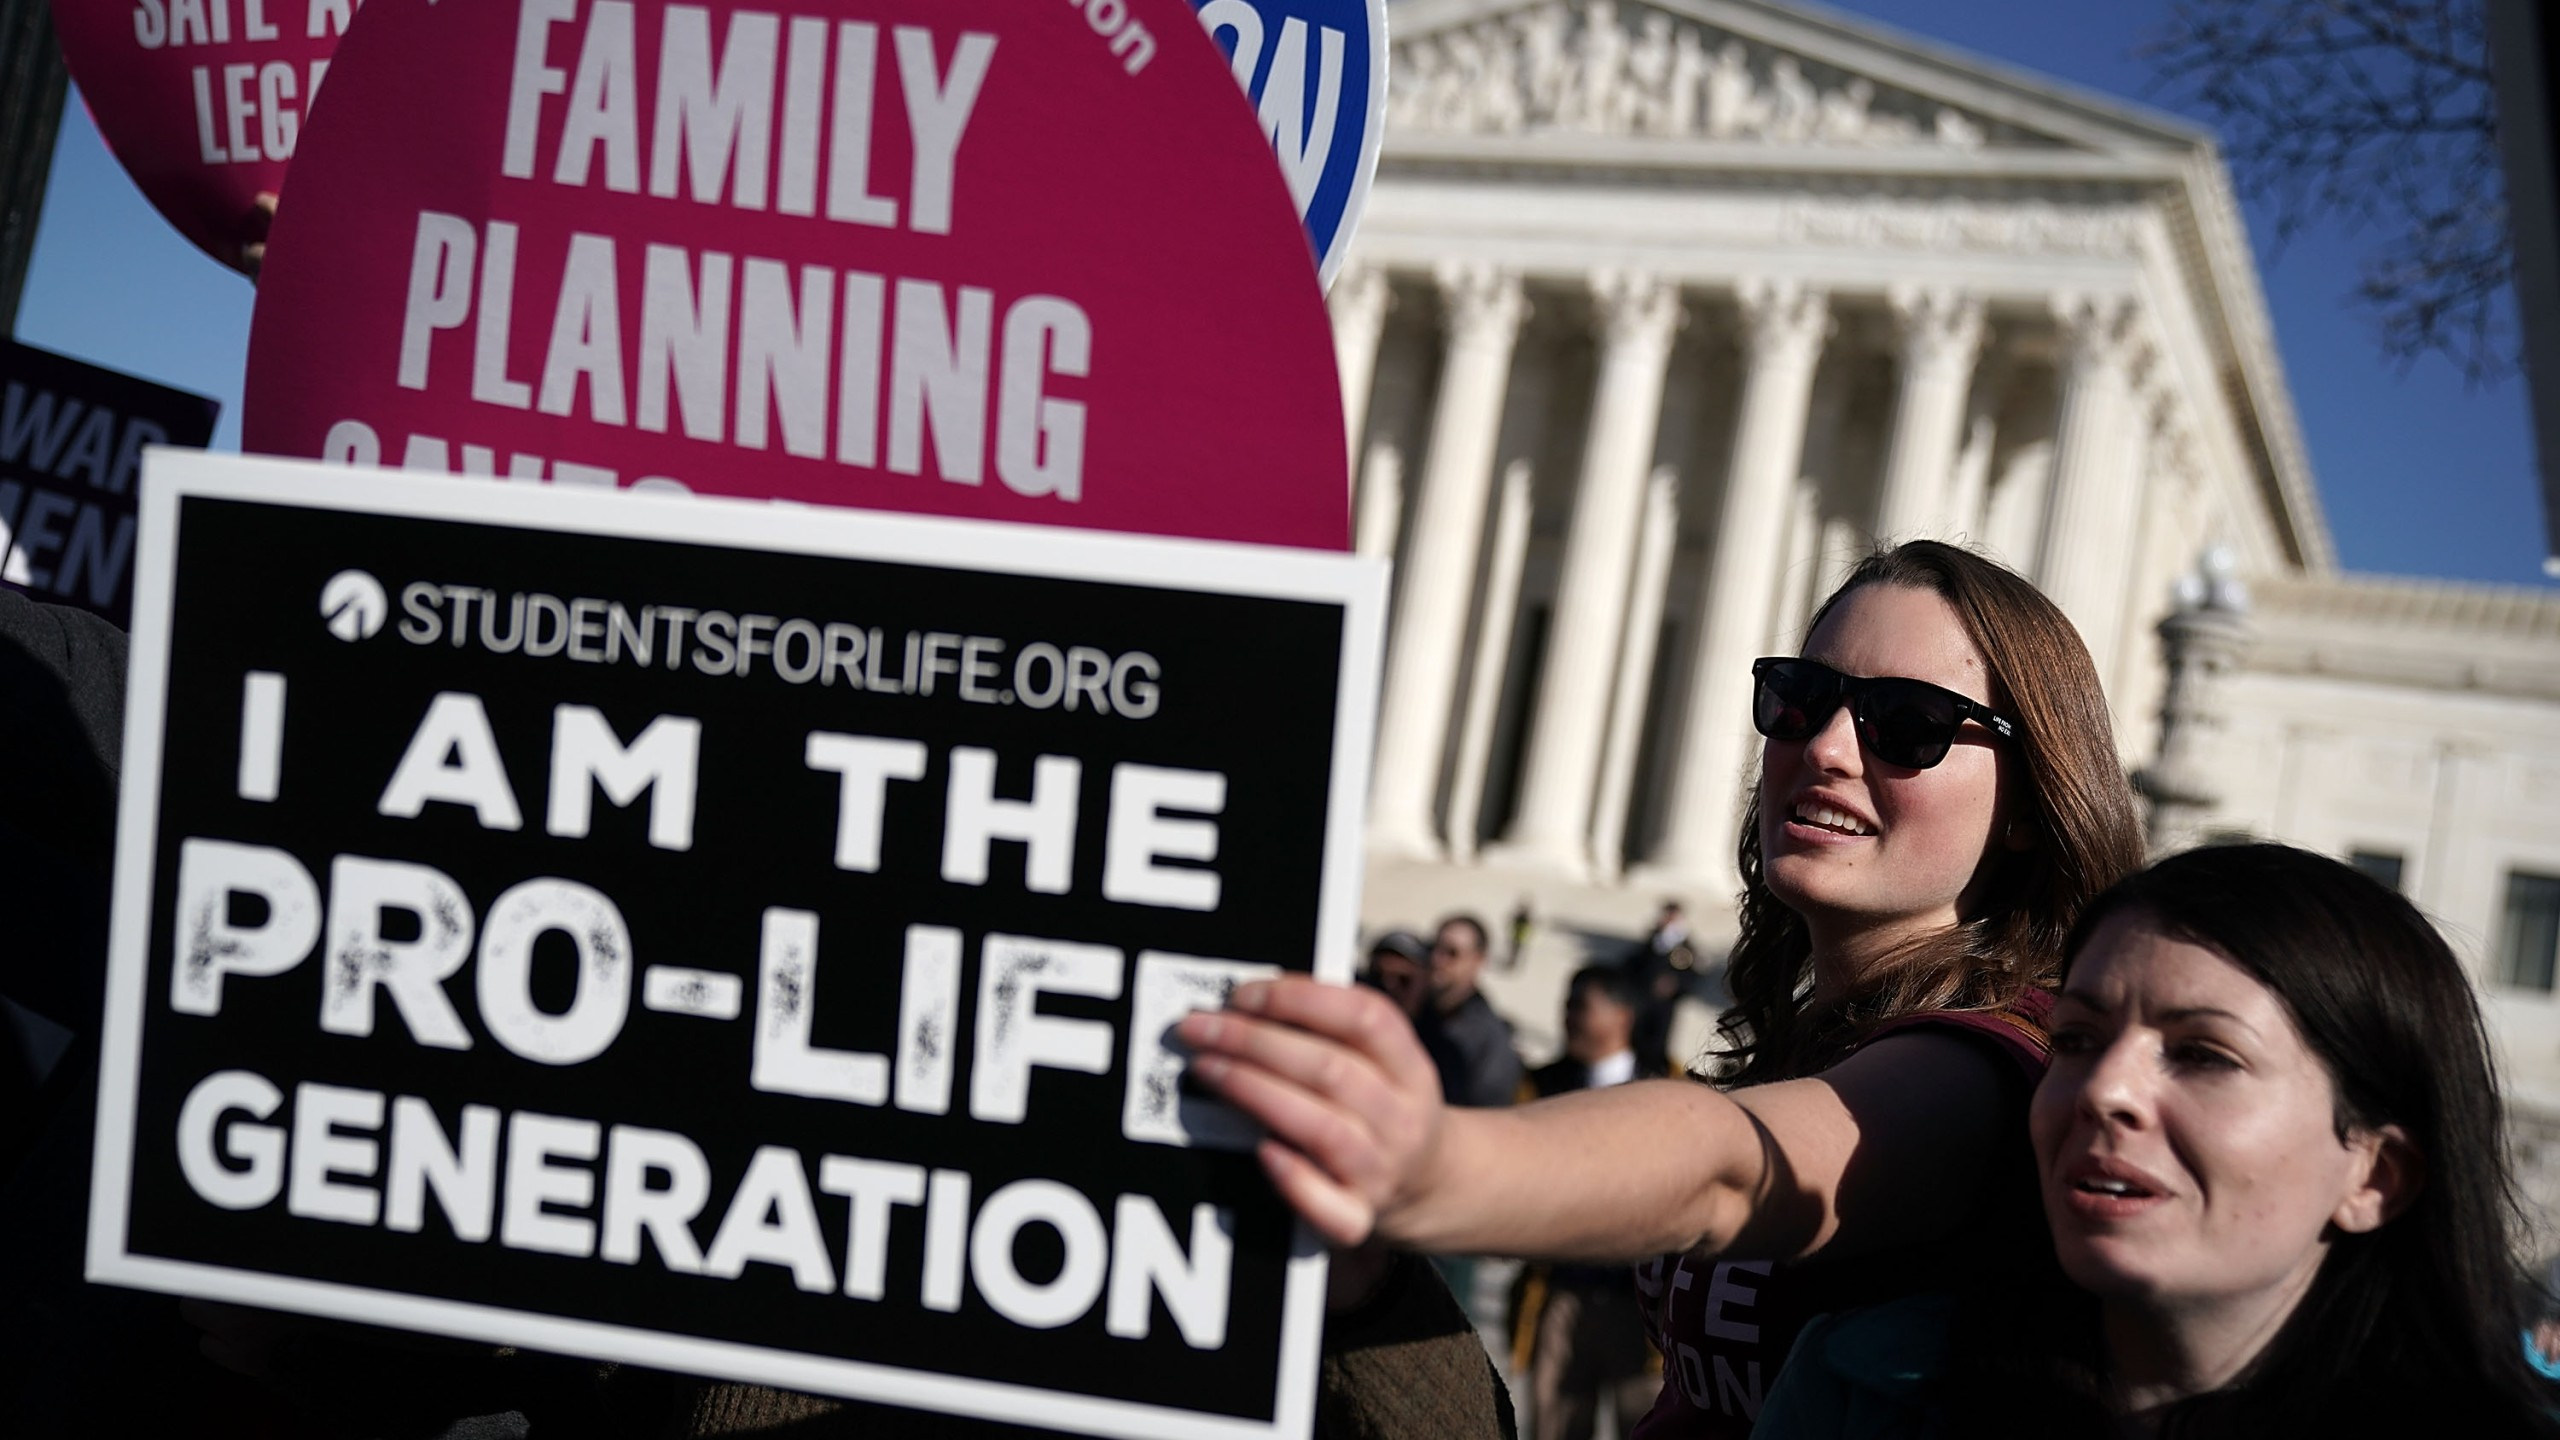 A pro-life activist tries to block the signs of pro-choice activists in front of the the U.S. Supreme Court during the 2018 March for Life January 19, 2018 in Washington, D.C. (Credit: Alex Wong/Getty Images)